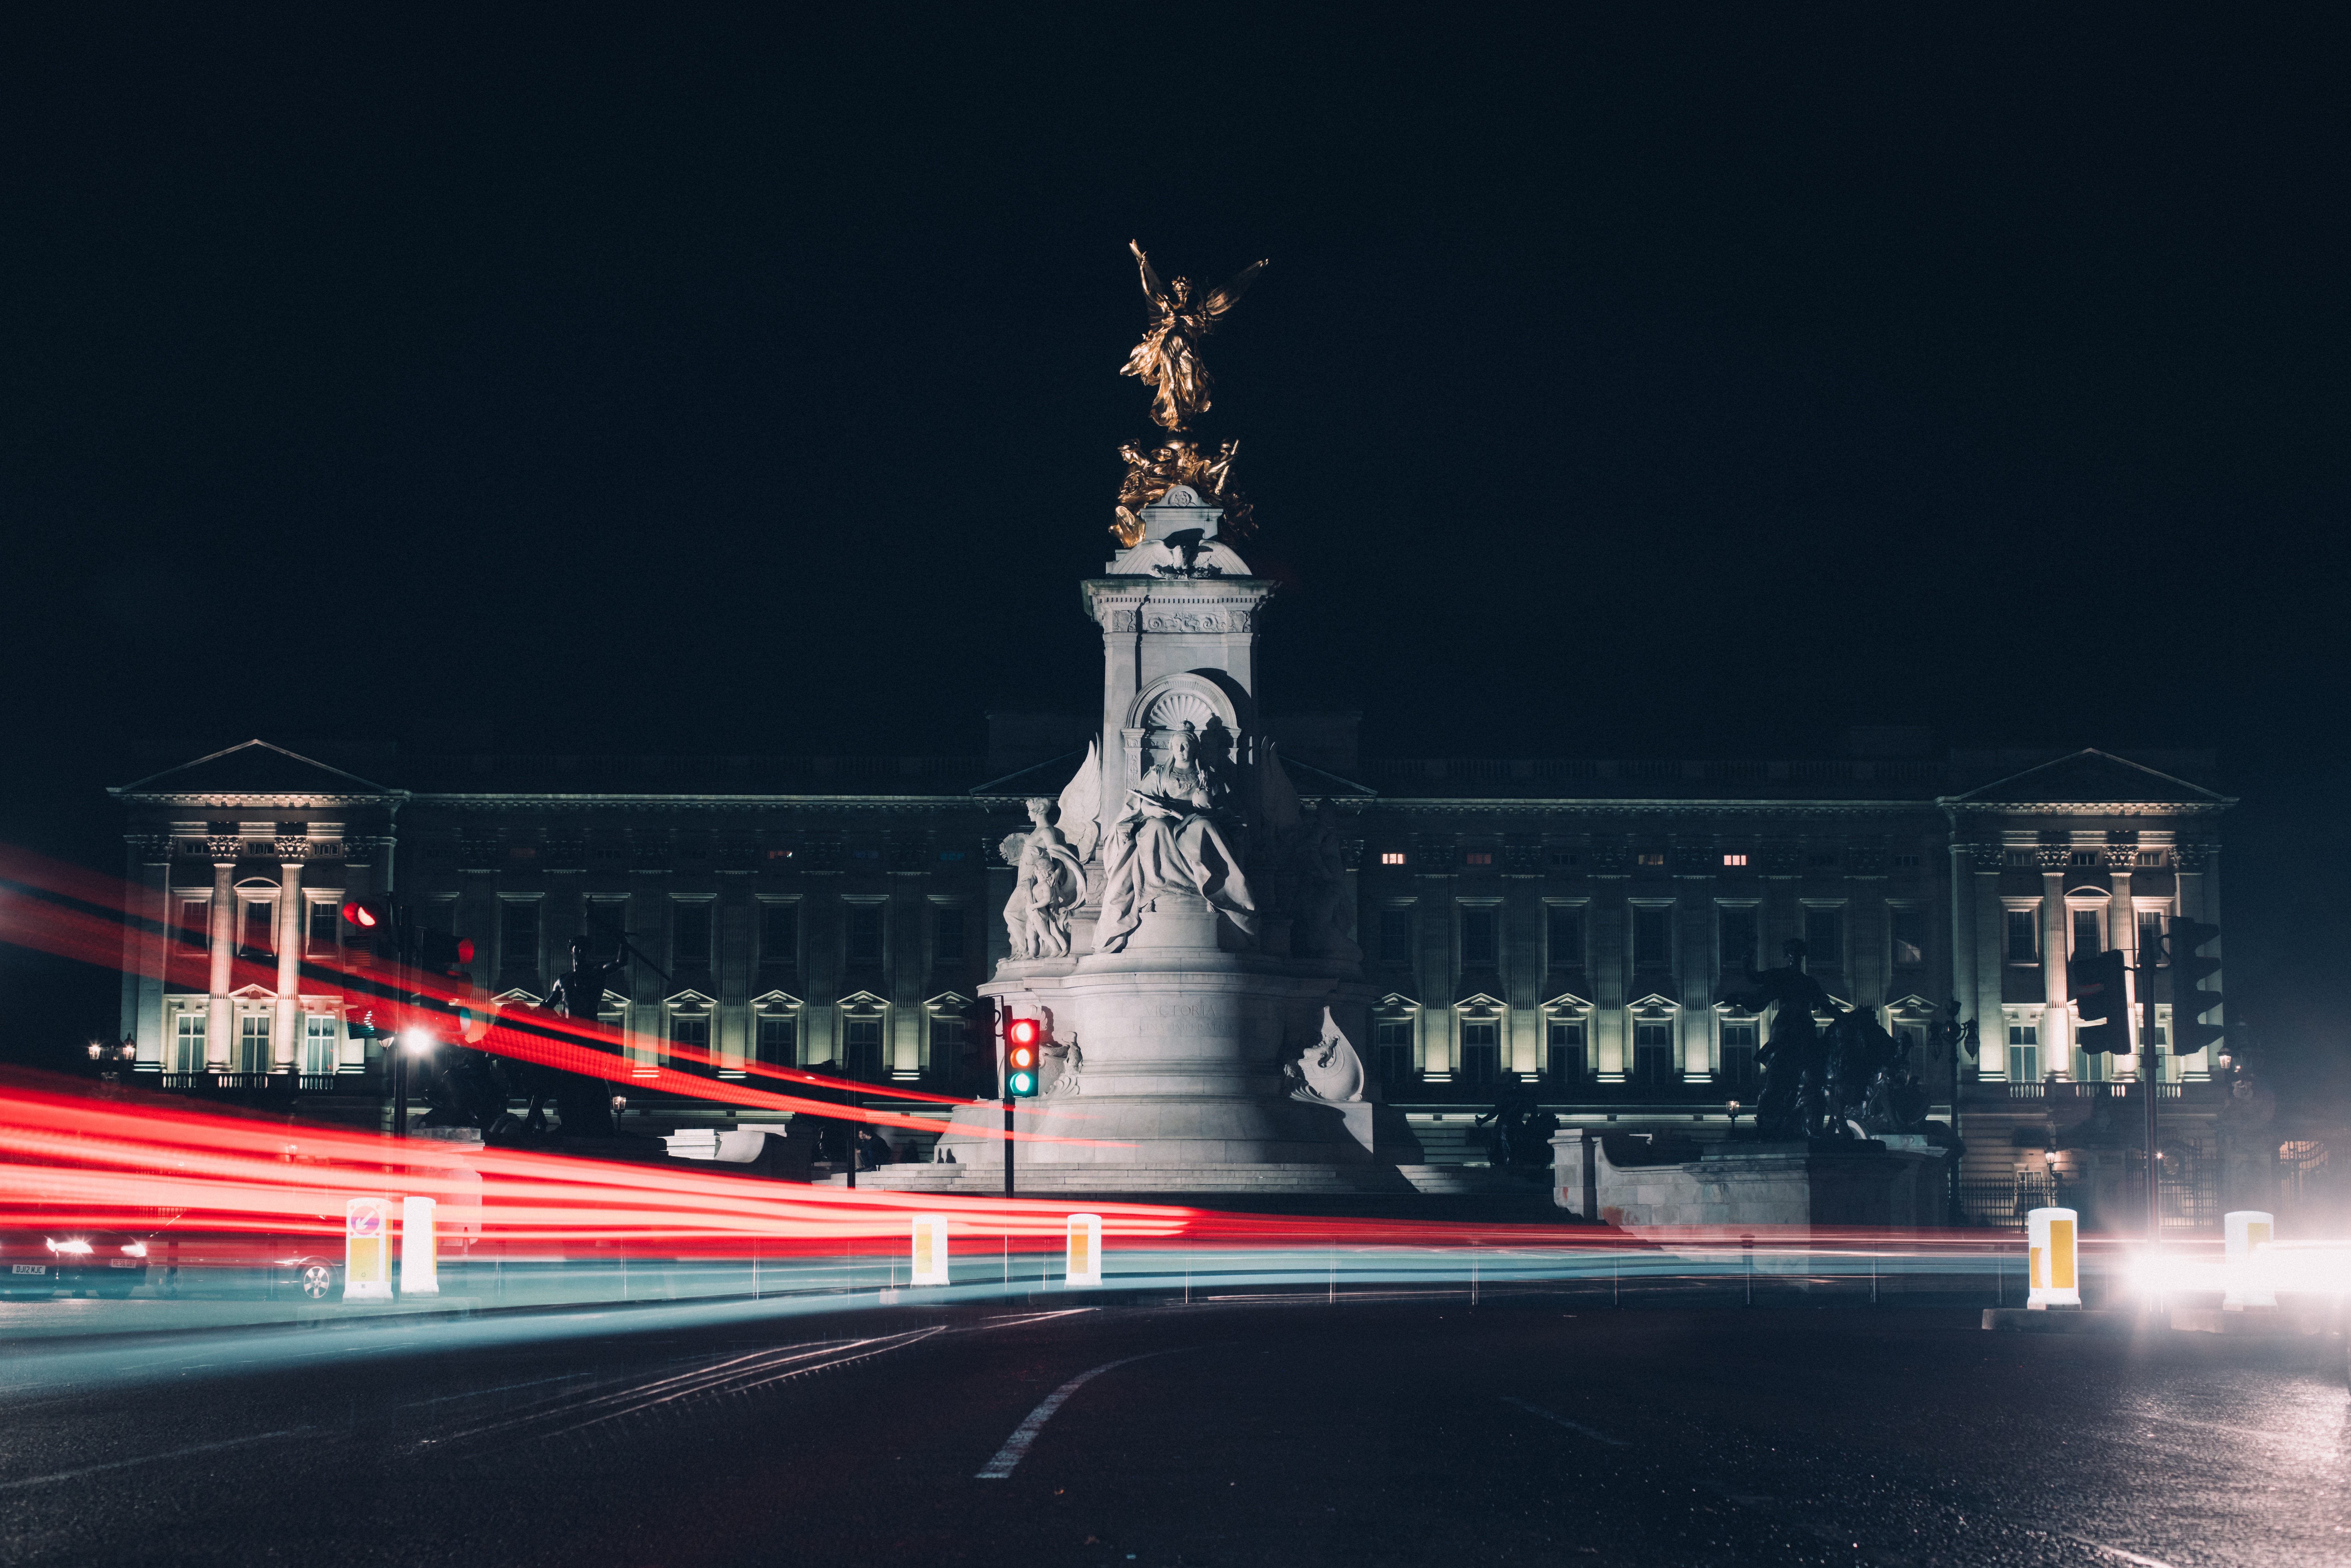 time lapse photography of gray building and statue